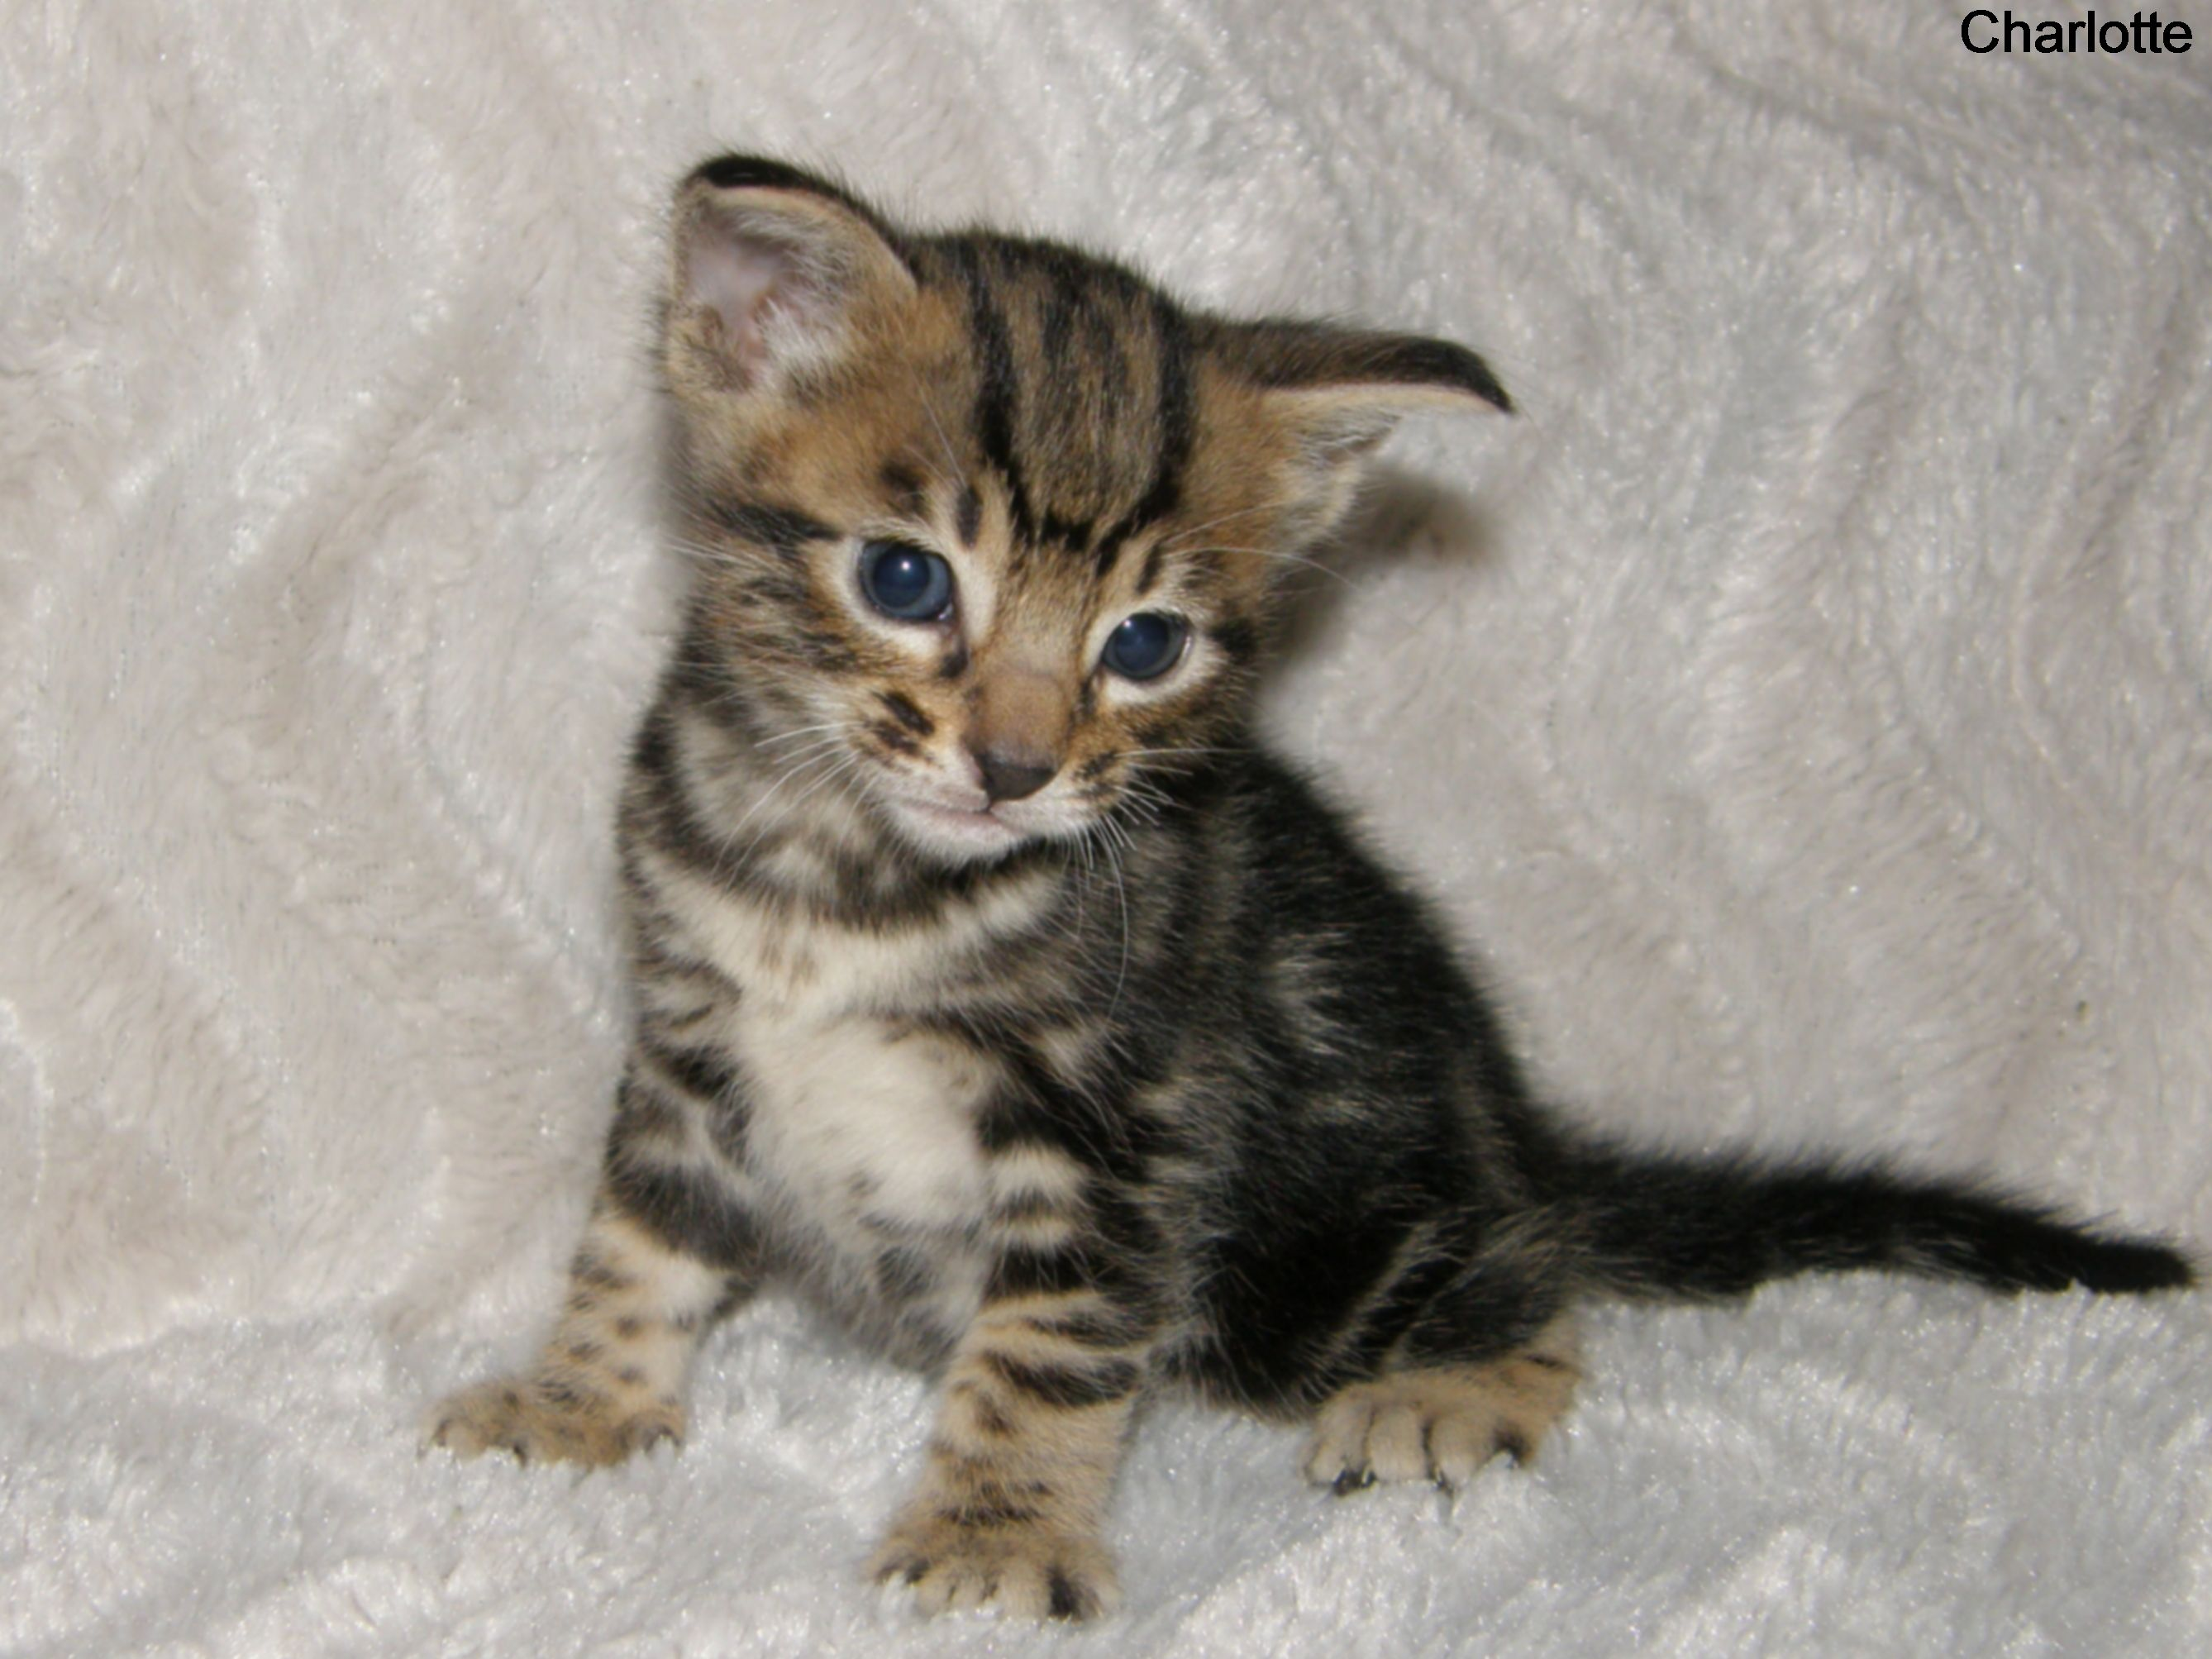 Charlotte Cheetoh Kittens 4 weeks old. Pets Pinterest